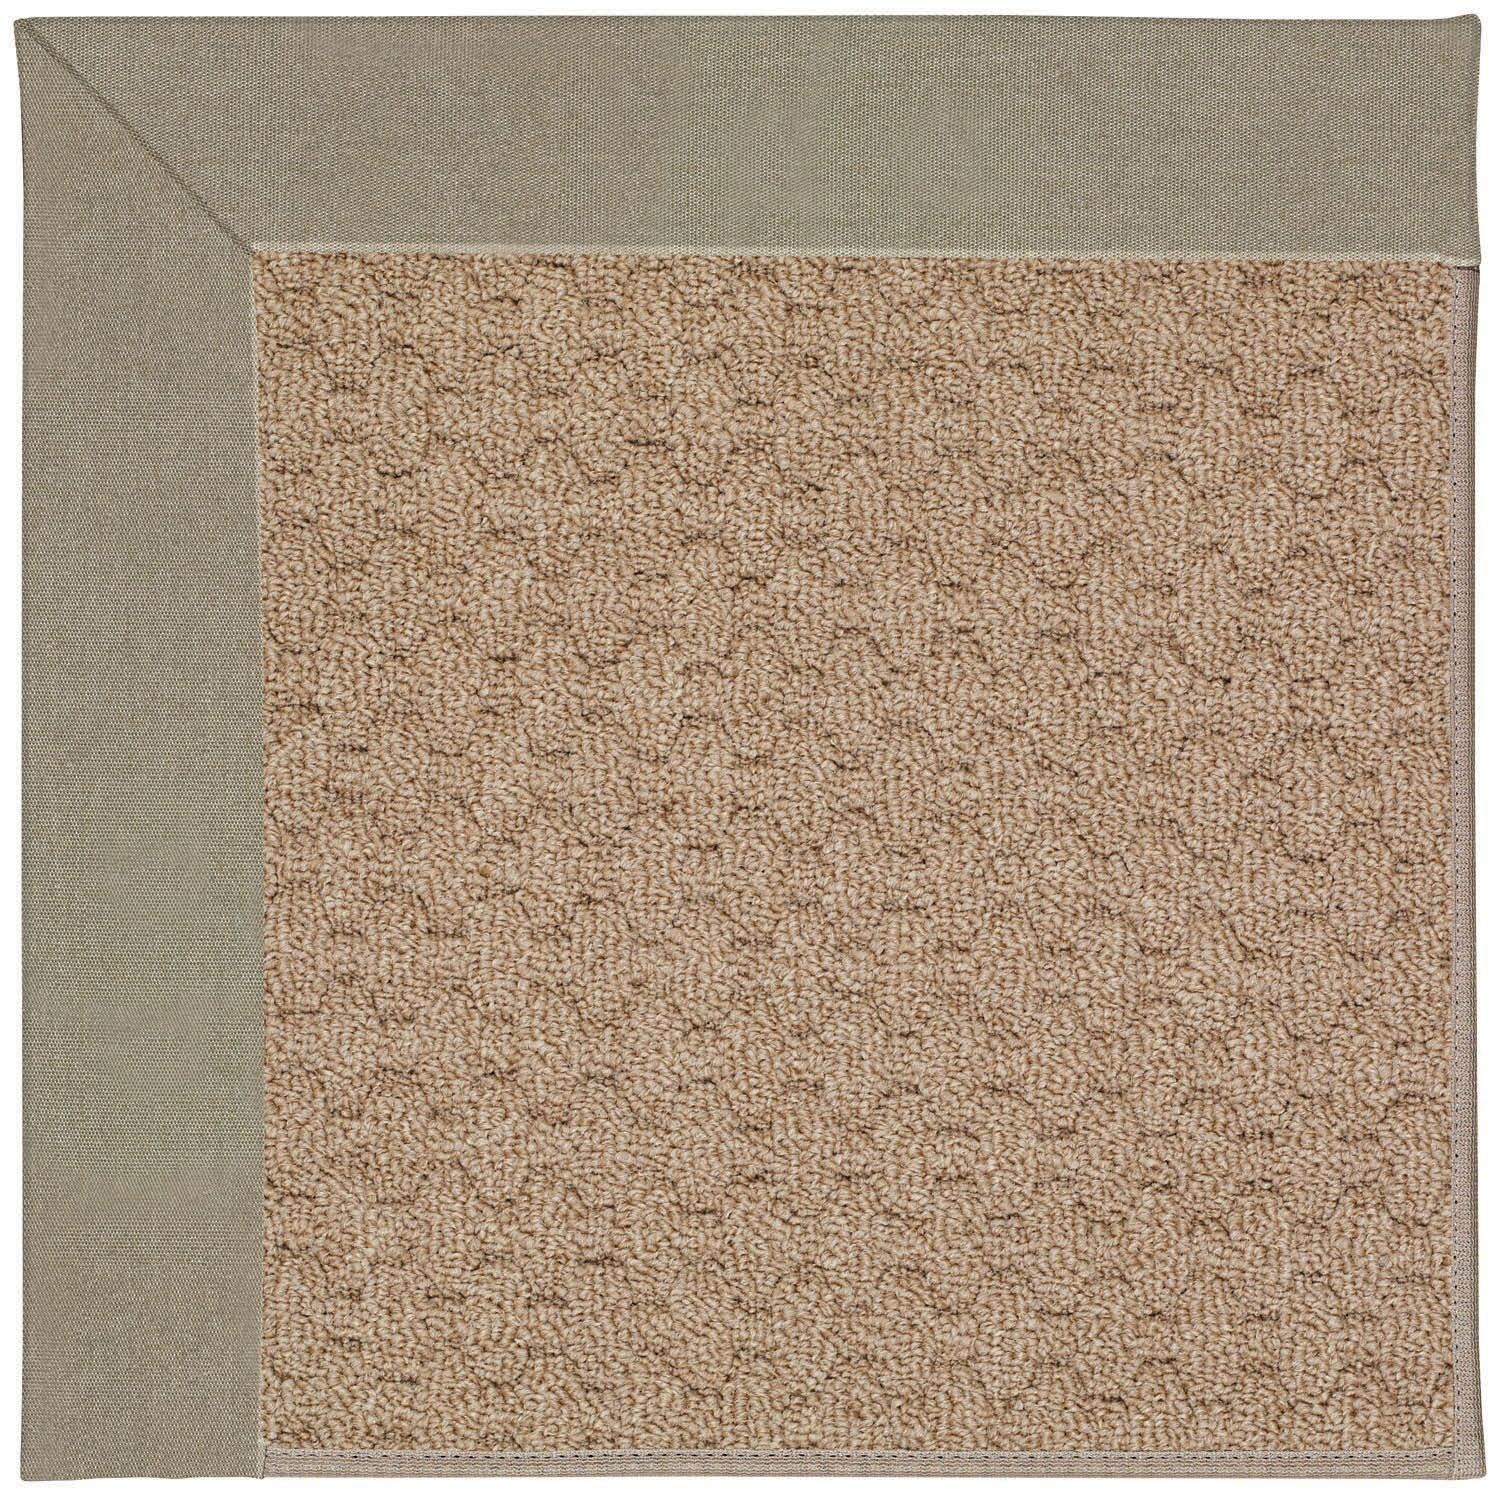 Lisle Machine Tufted Buff/Brown Indoor/Outdoor Area Rug Rug Size: Square 6'